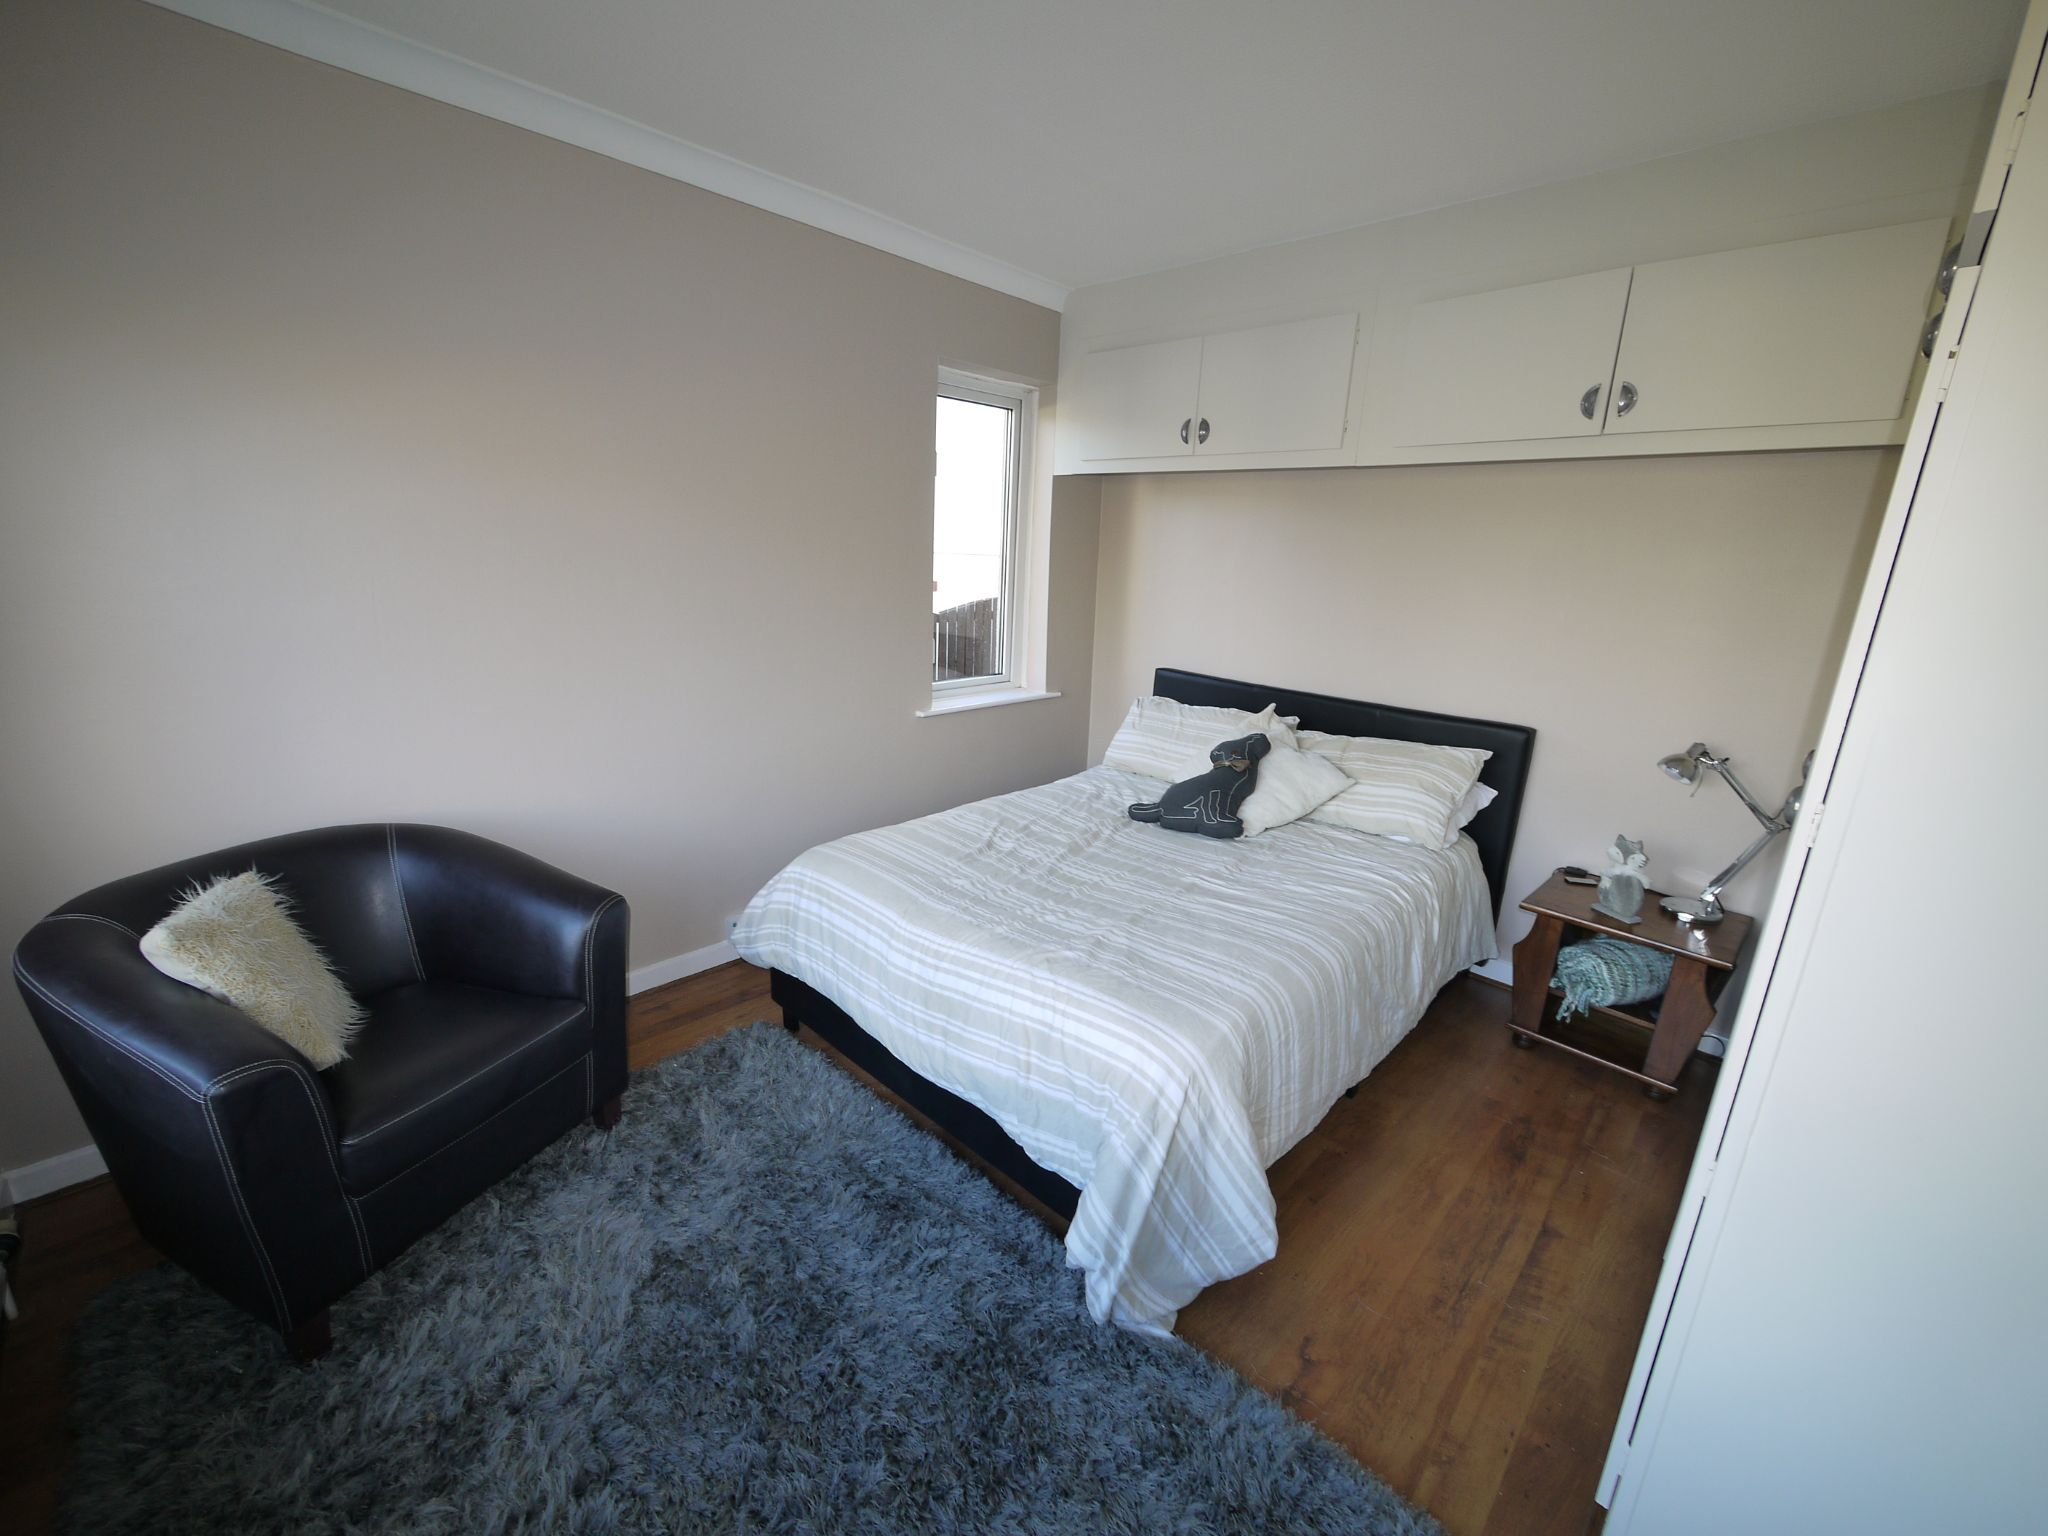 5 bedroom detached bungalow For Sale in Brighouse - ground flr bed.